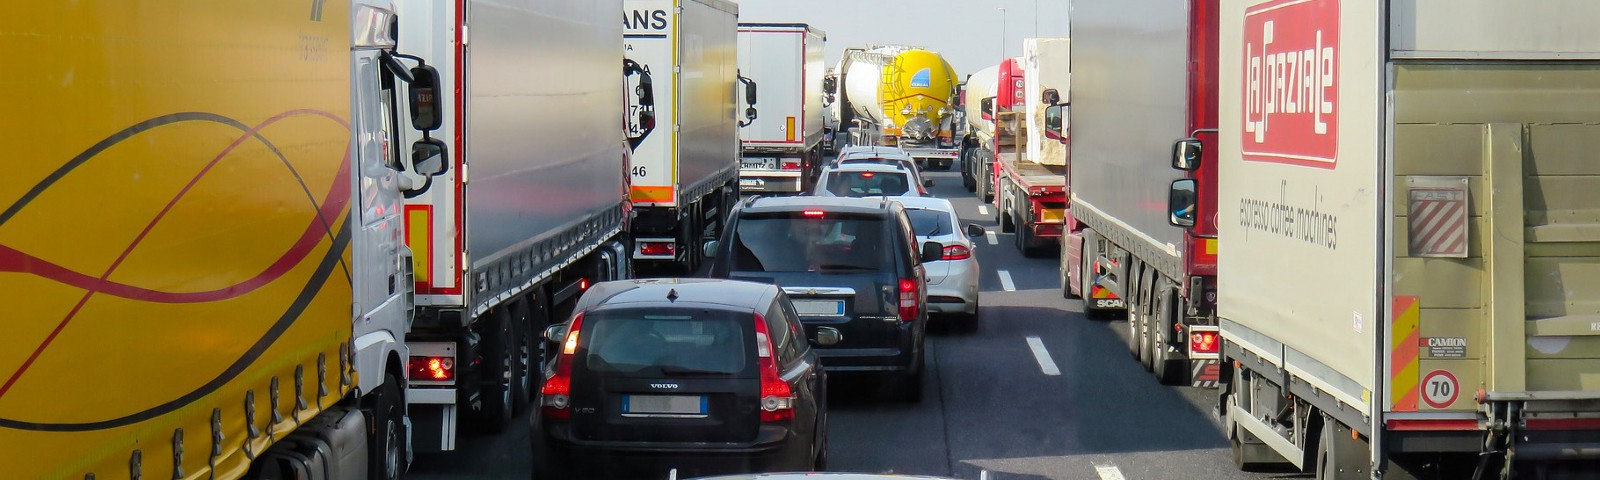 Road traffic makes up one-fifth of the EU's total CO2 emissions. Image credit: Pixabay/ Gellinger